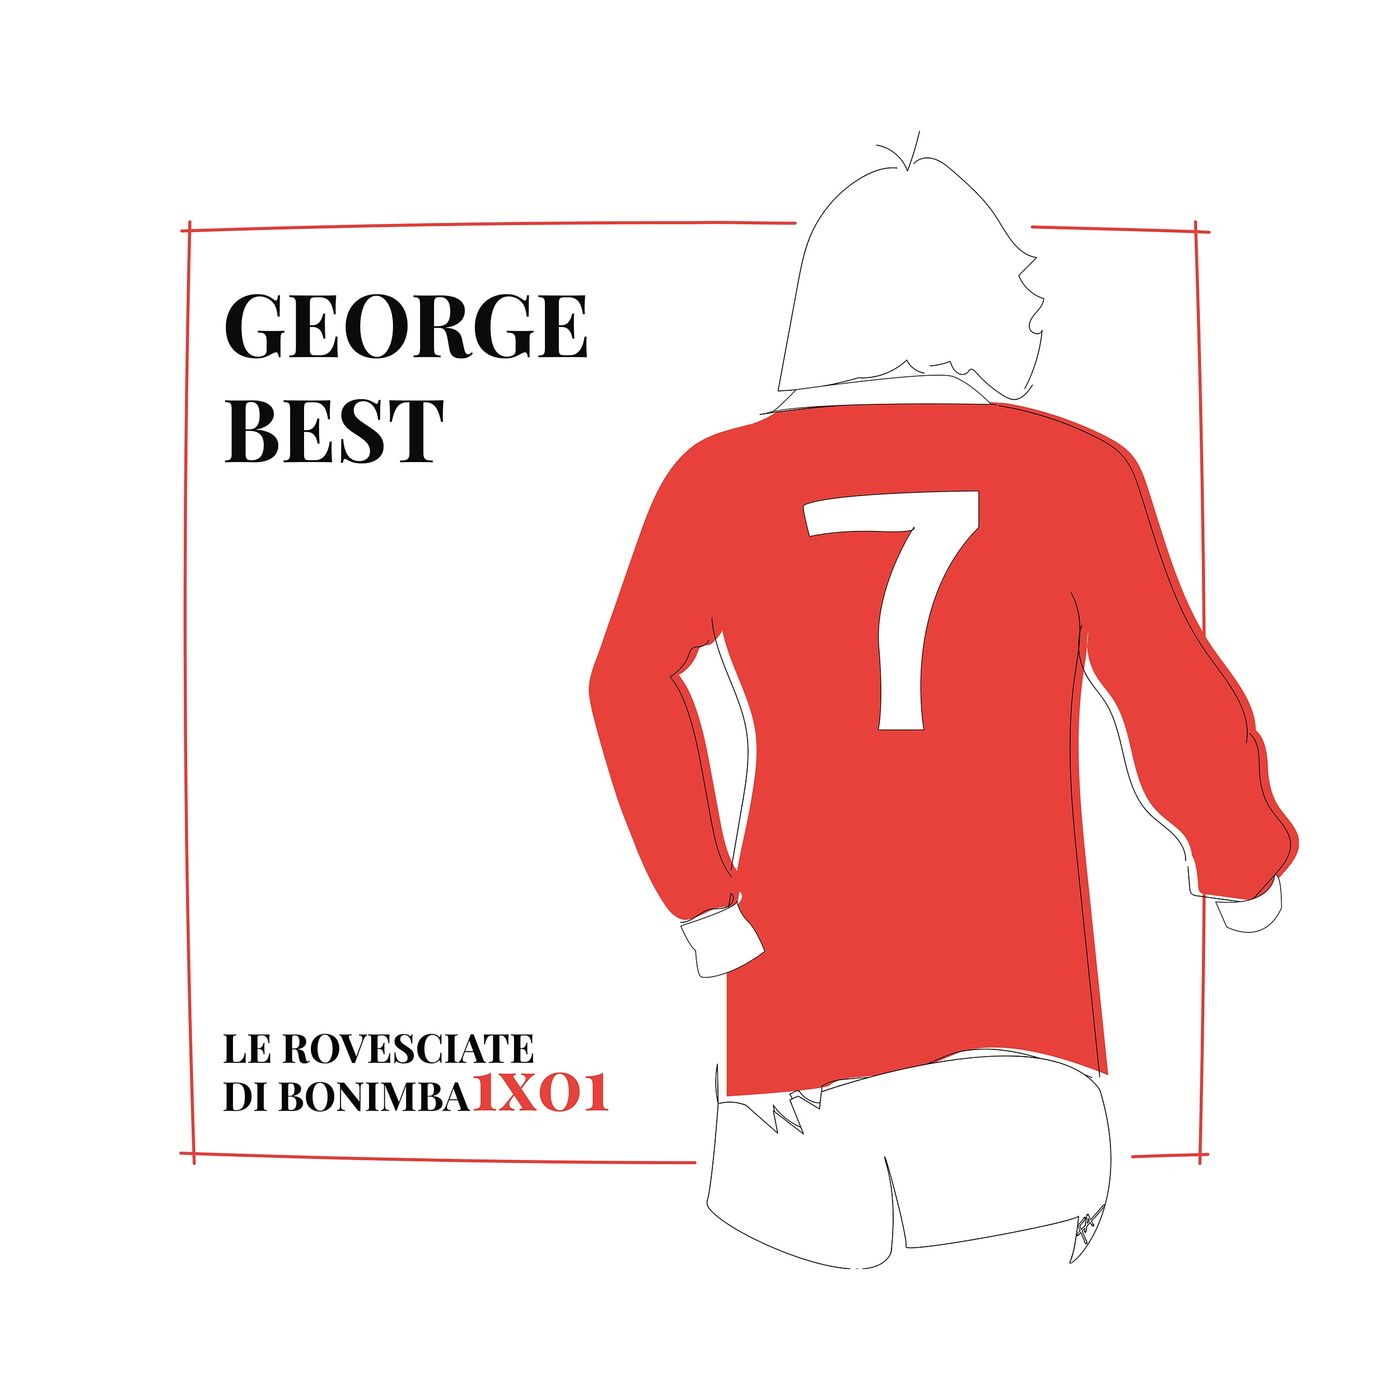 Le rovesciate di Bonimba 1X01: George Best